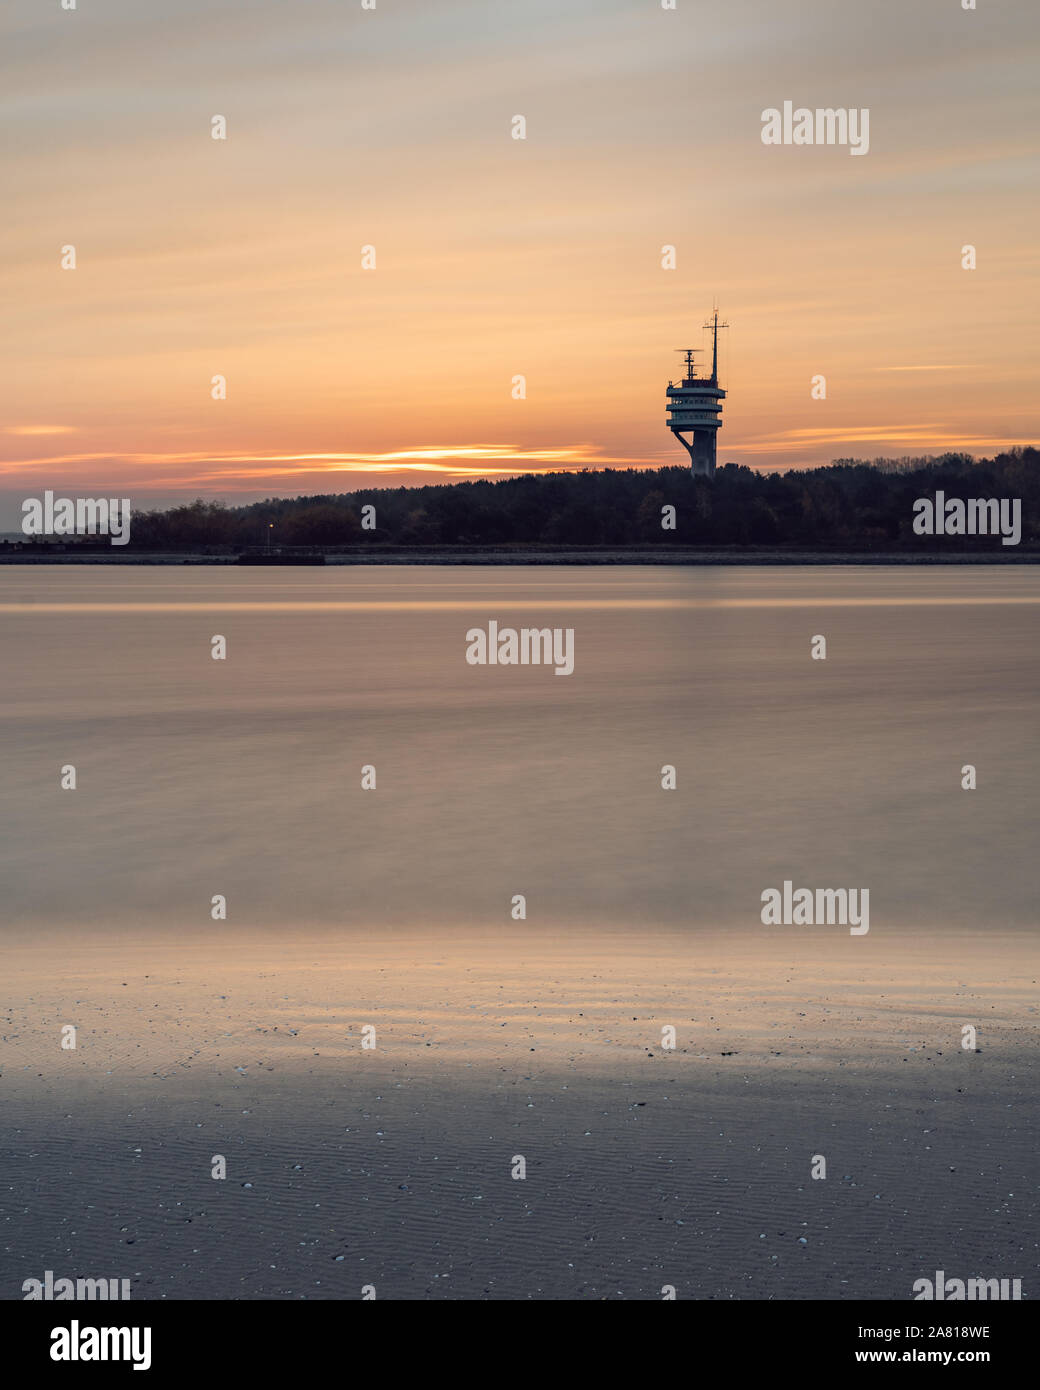 Sunrise over the Baltic sea during late Autumn and Spring season. Stock Photo